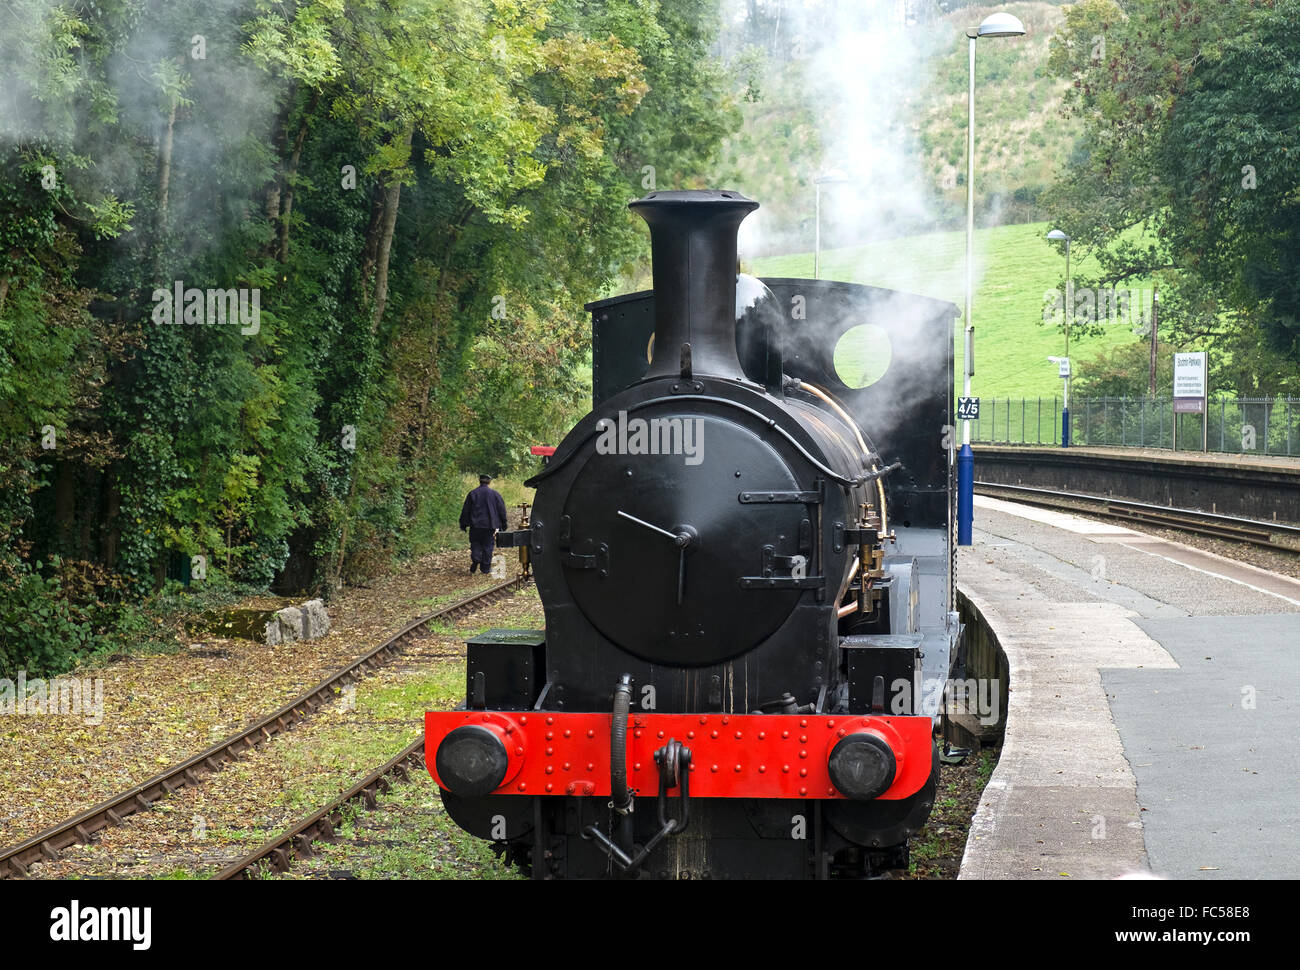 Steam engine at he Bodmin and Wenford steam railway, Cornwall, UK - Stock Image